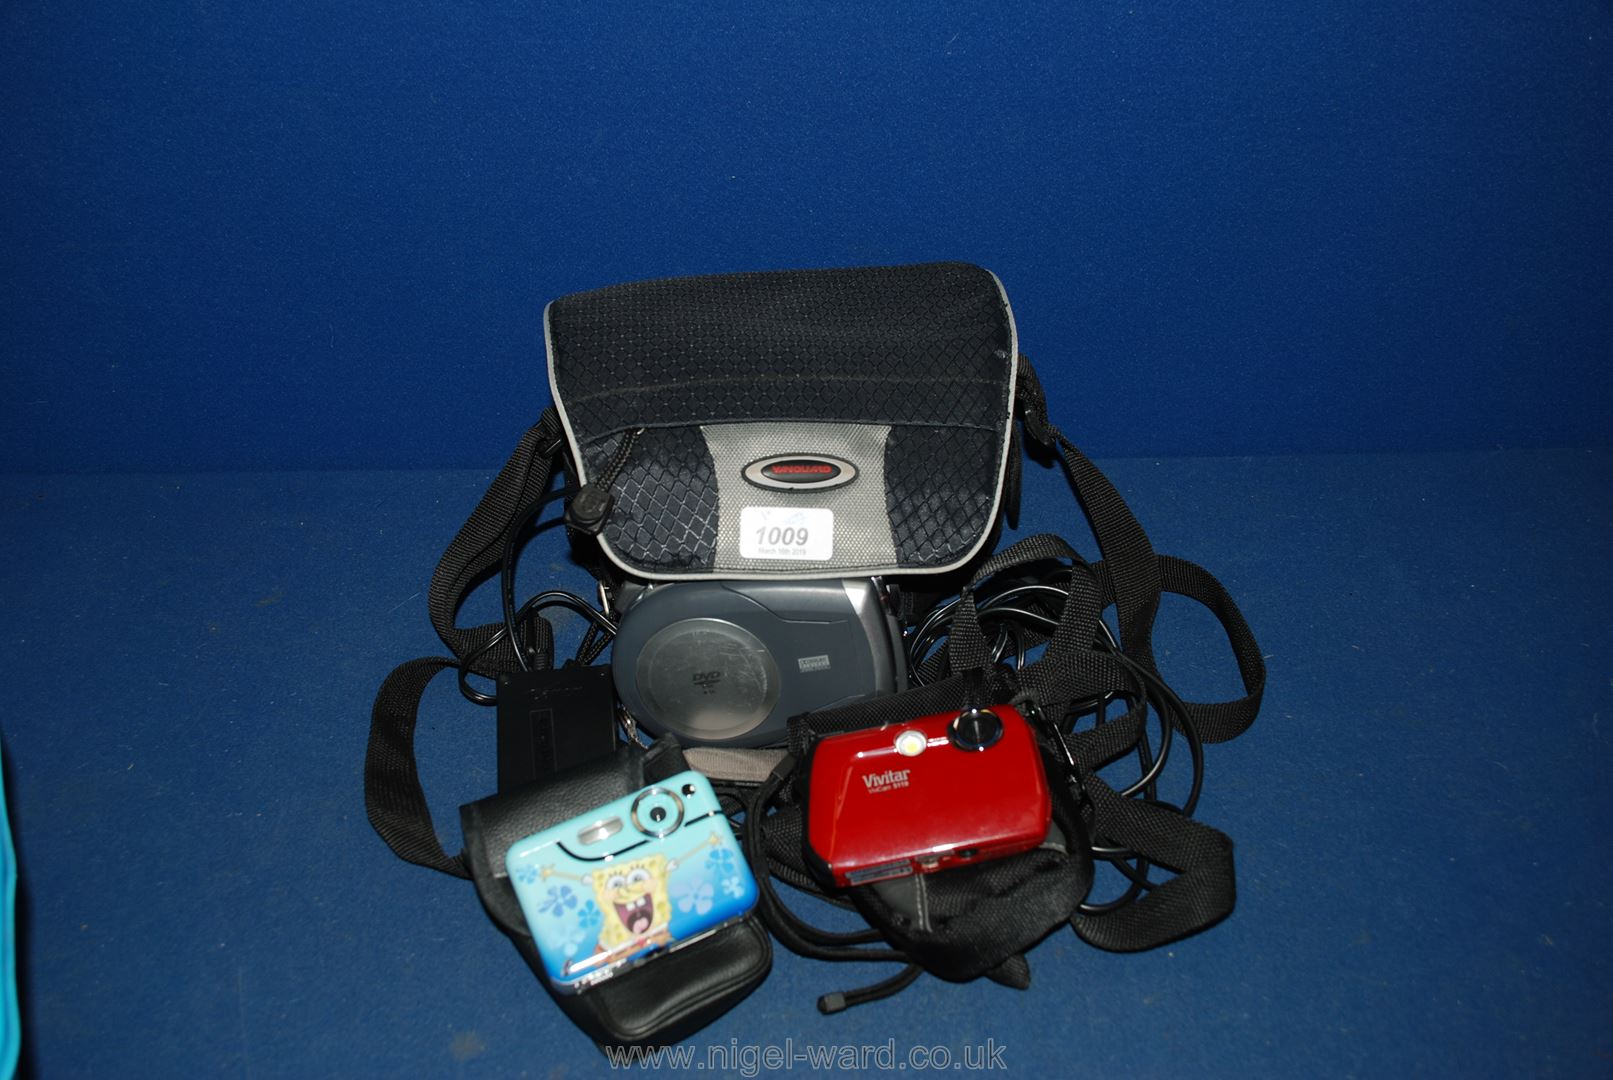 Lot 1009 - A Canon DC201 DVD Camcorder with accessories and case plus two compact digital Cameras